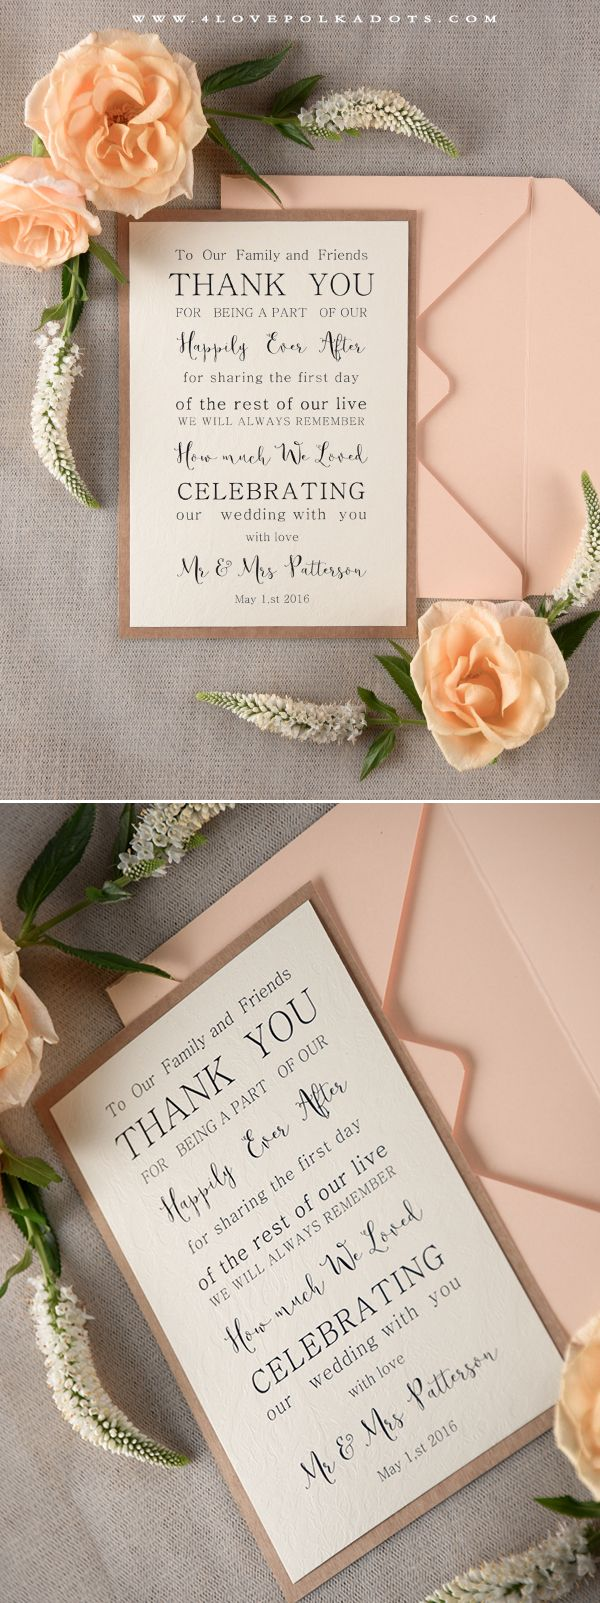 Modest Romantic Wedding Thank You Card #thankyou #romanticwedding #summerwedding